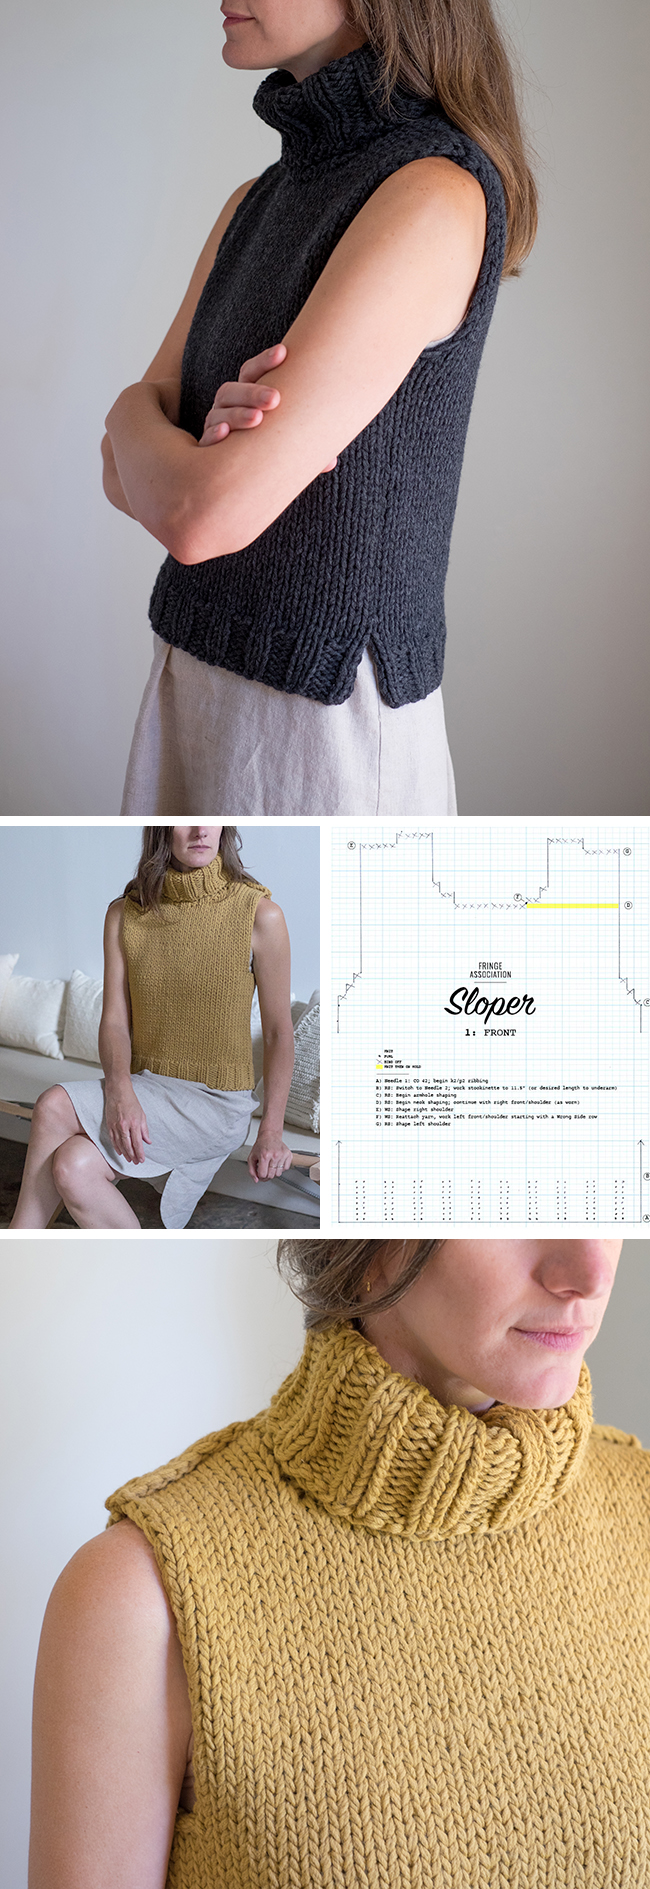 Knitting Pattern Of The Day : Sloper: Basic pattern for a sleeveless sweater Fringe ...